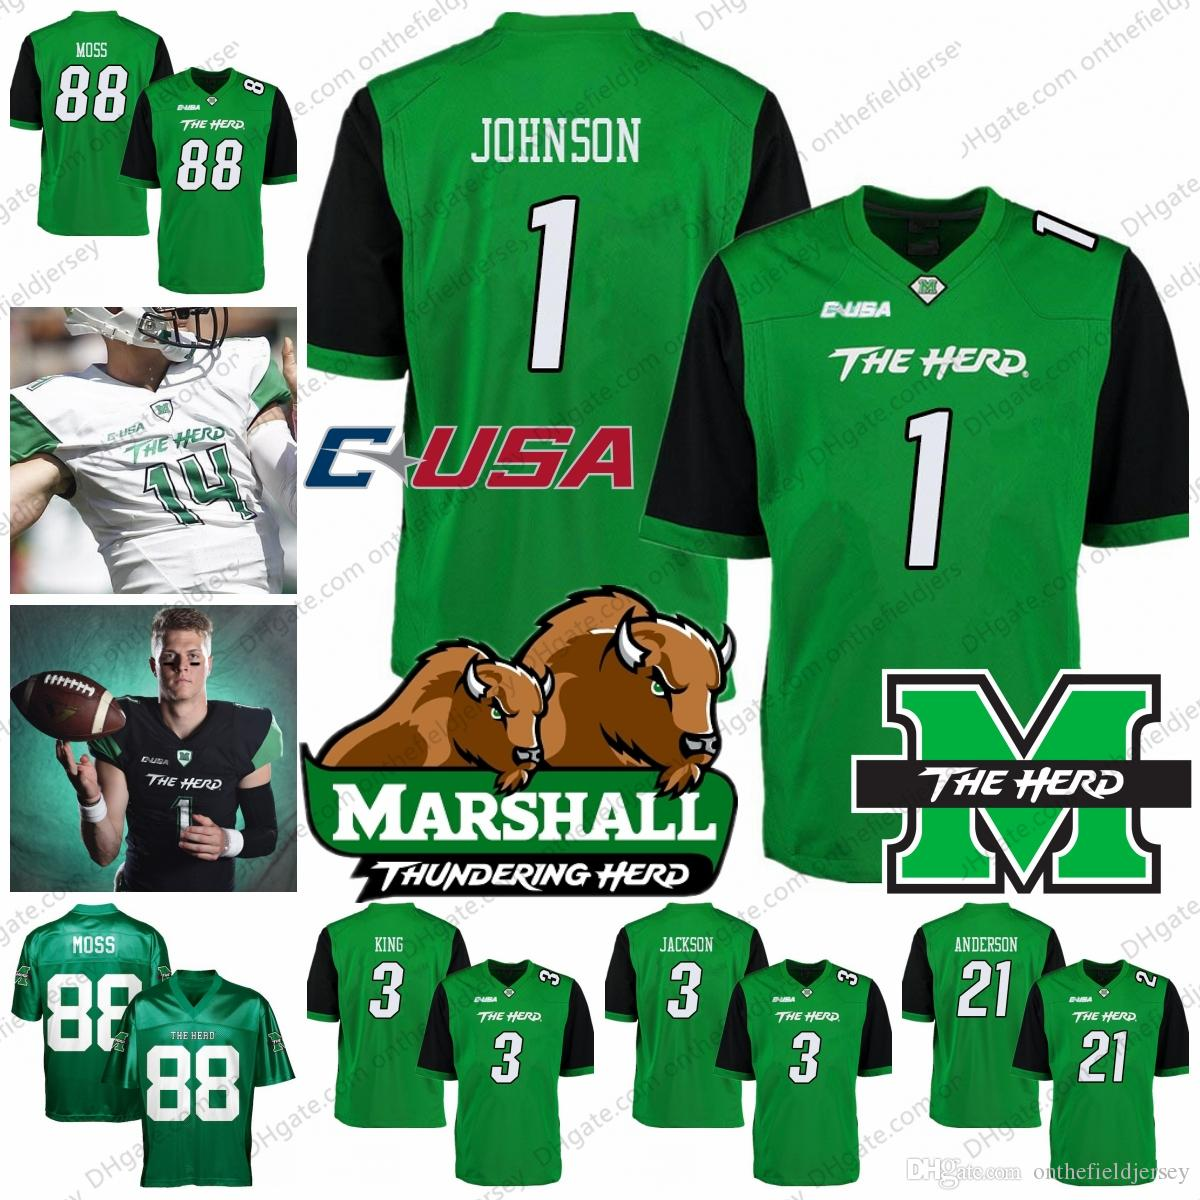 8fd24a50d 2019 Marshall Thundering Herd NCAA College Football Jersey  1 Willie  Johnson 3 Chris Jackson 3 Tyler King 21 Anthony Anderson 88 Randy Moss S  4XL From ...